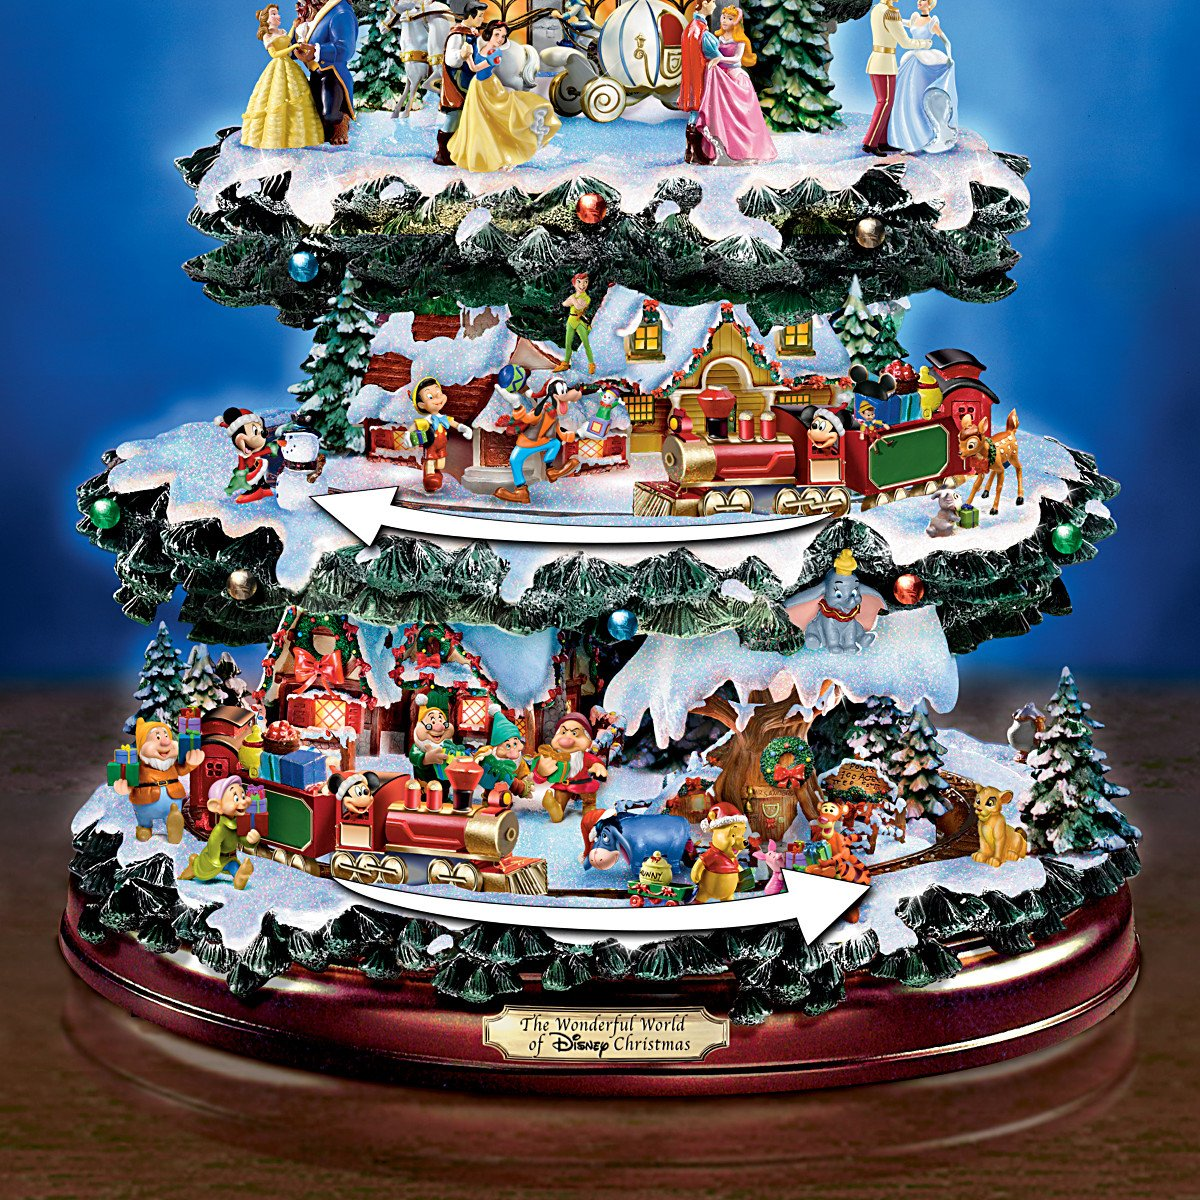 Disney Outdoor Christmas Decorations - Amazon com disney tabletop christmas tree the wonderful world of disney by the bradford exchange home kitchen